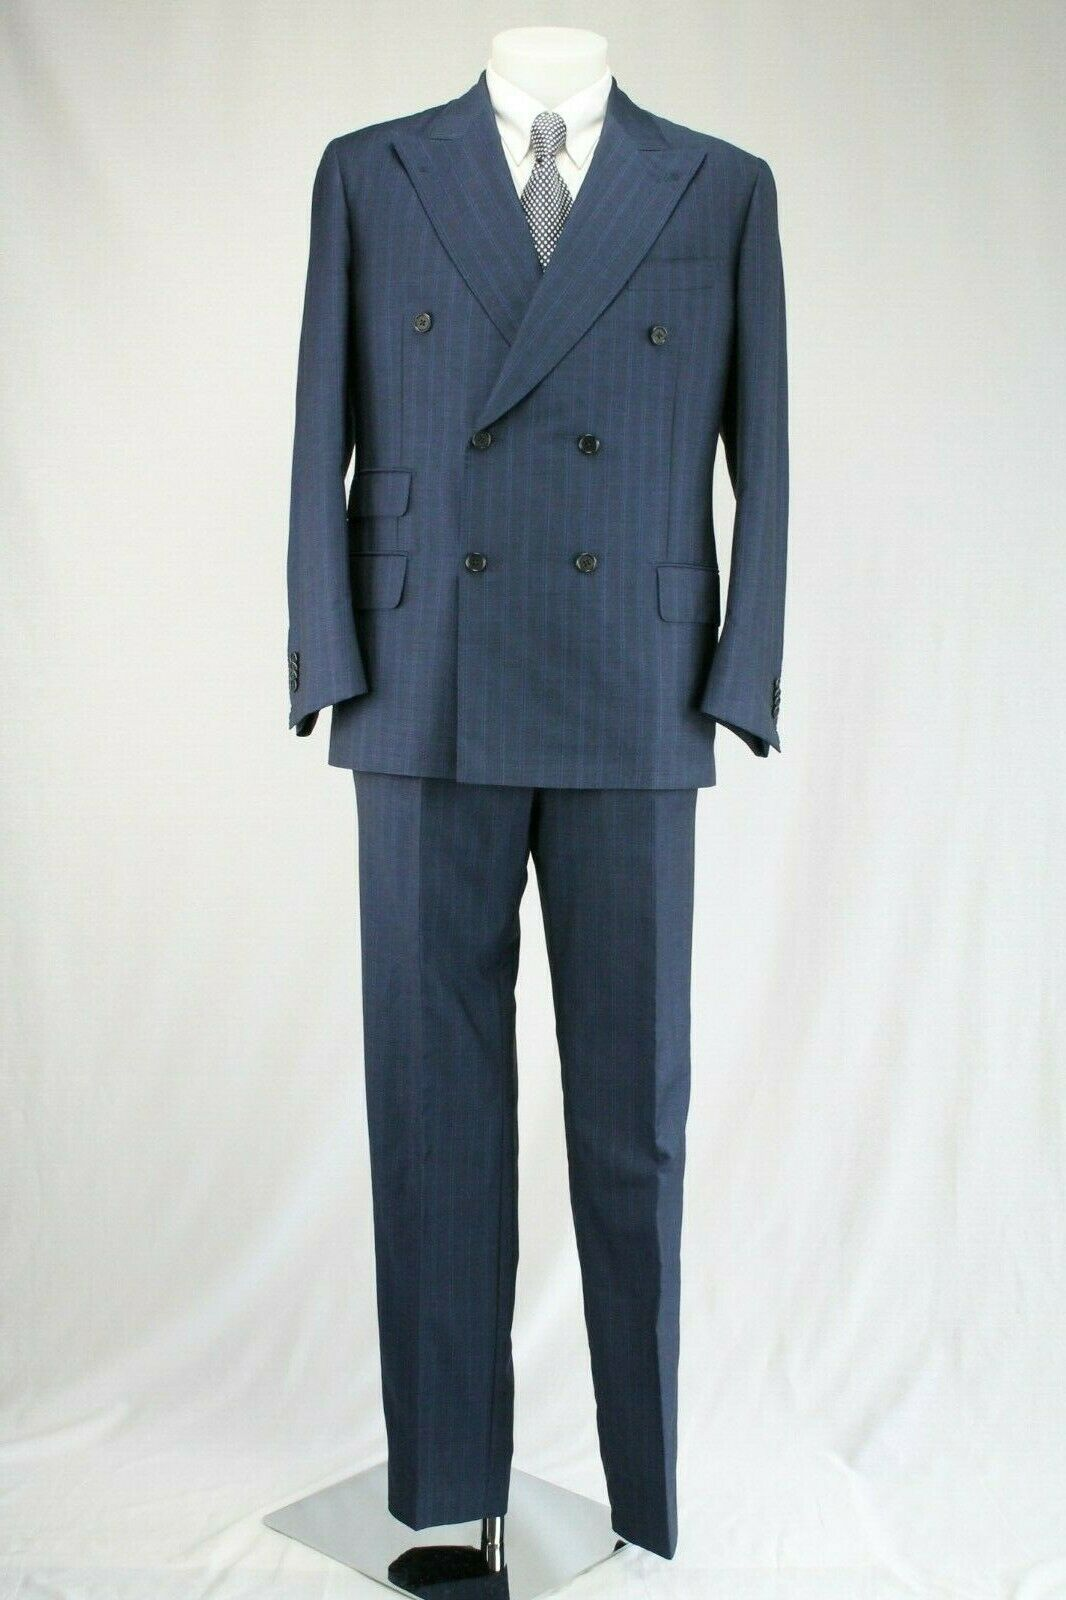 Sartoria Castangia Navy Striped Double Breasted Suit, Size  UK42 EU52